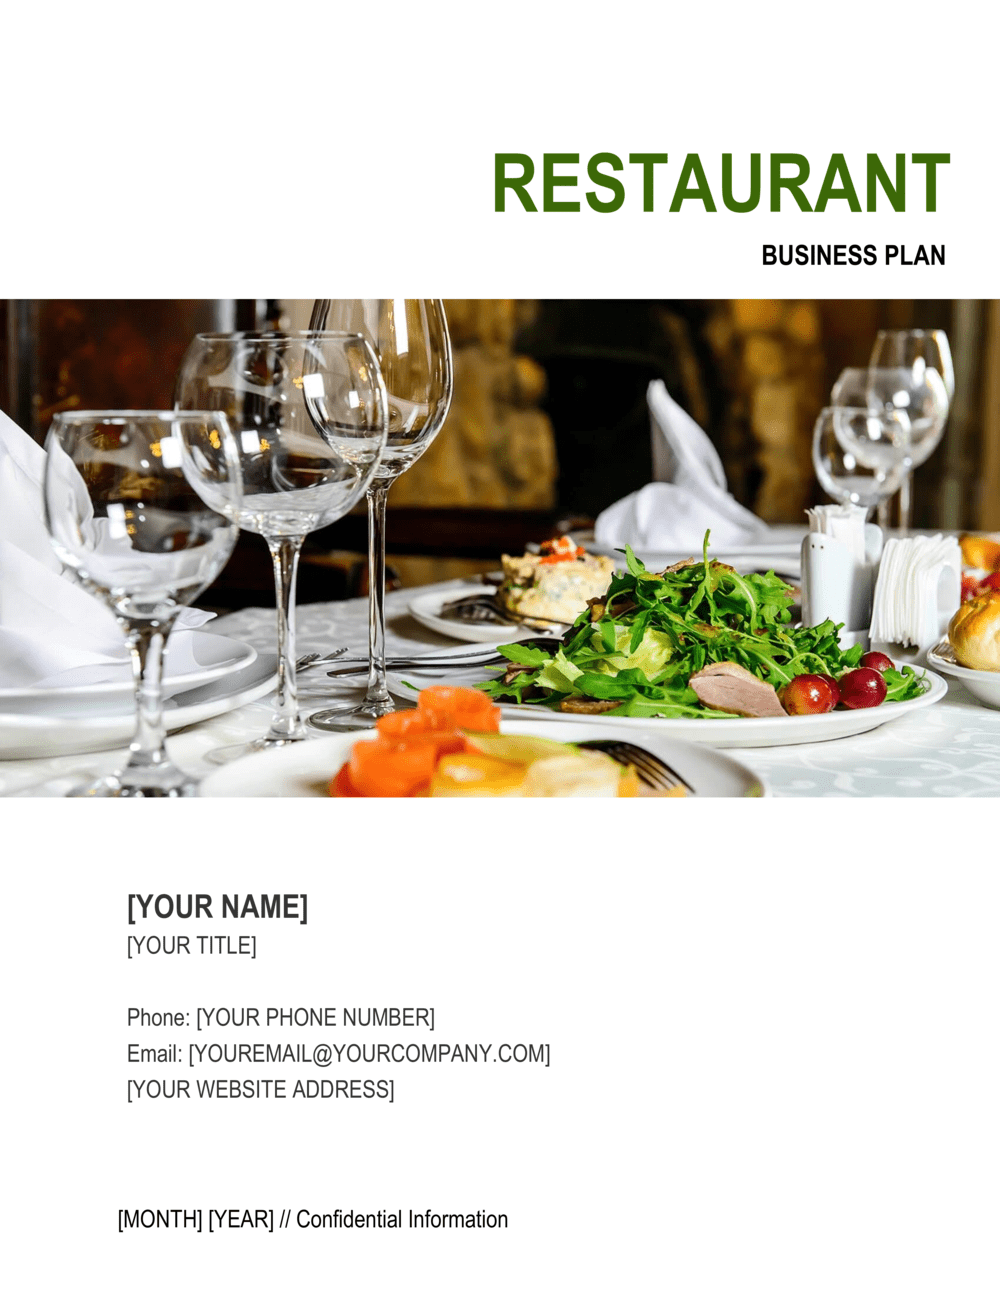 Business-in-a-Box's Restaurant Business Plan Template